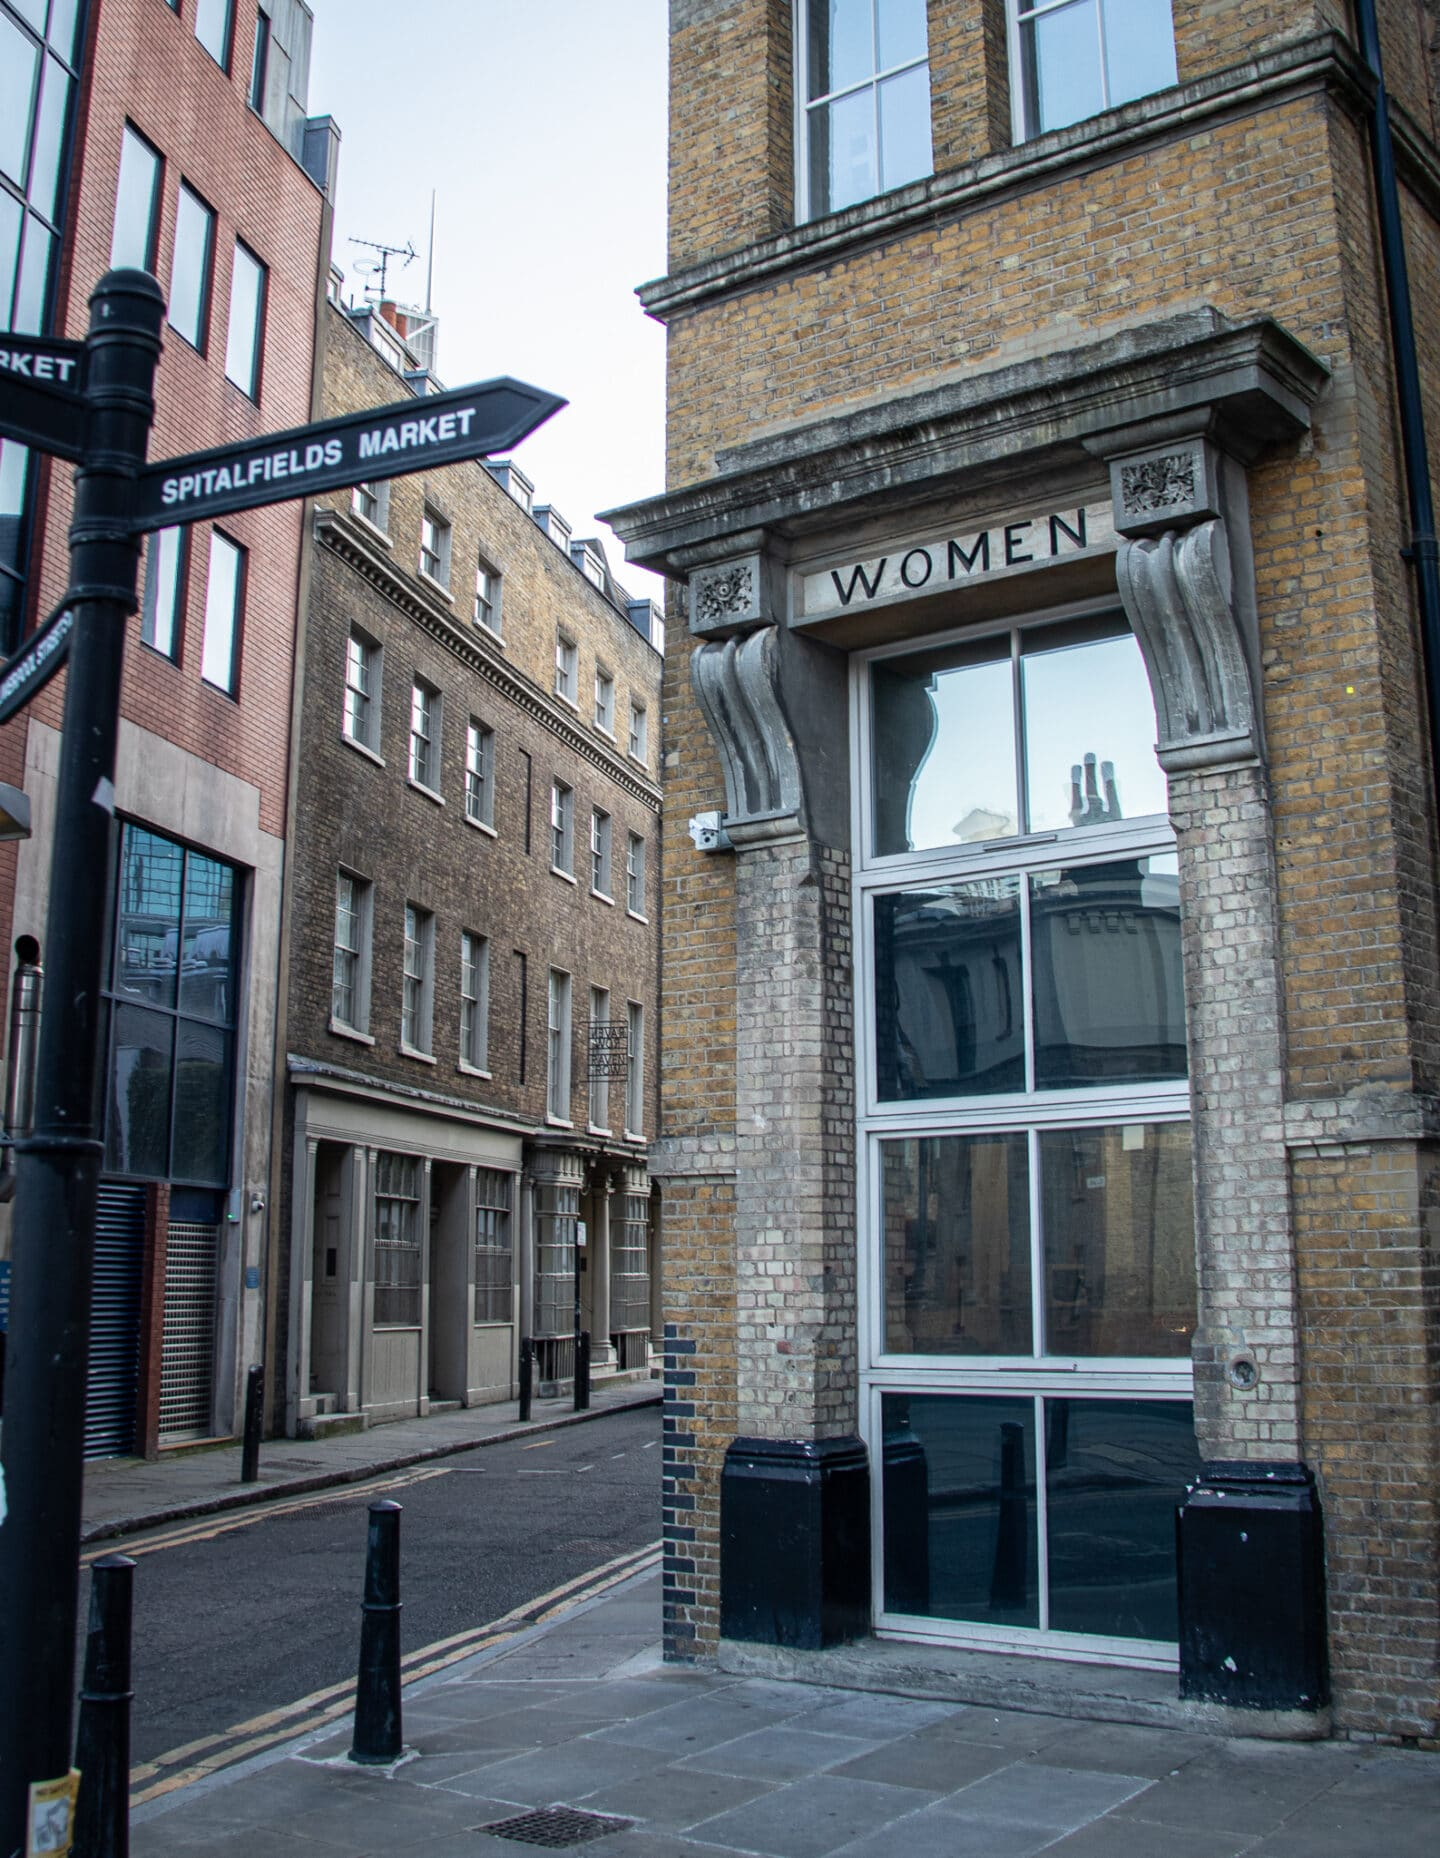 There's a converted workhouse on Crispin Lane near Spitalfields market. Today it is student accommodation. The signs for 'men' and 'women ' above the doorways are the only indication of the building's past. It's believed that Mary Jane Kelly, the final victim of Jack The Ripper, stayed here before her death.